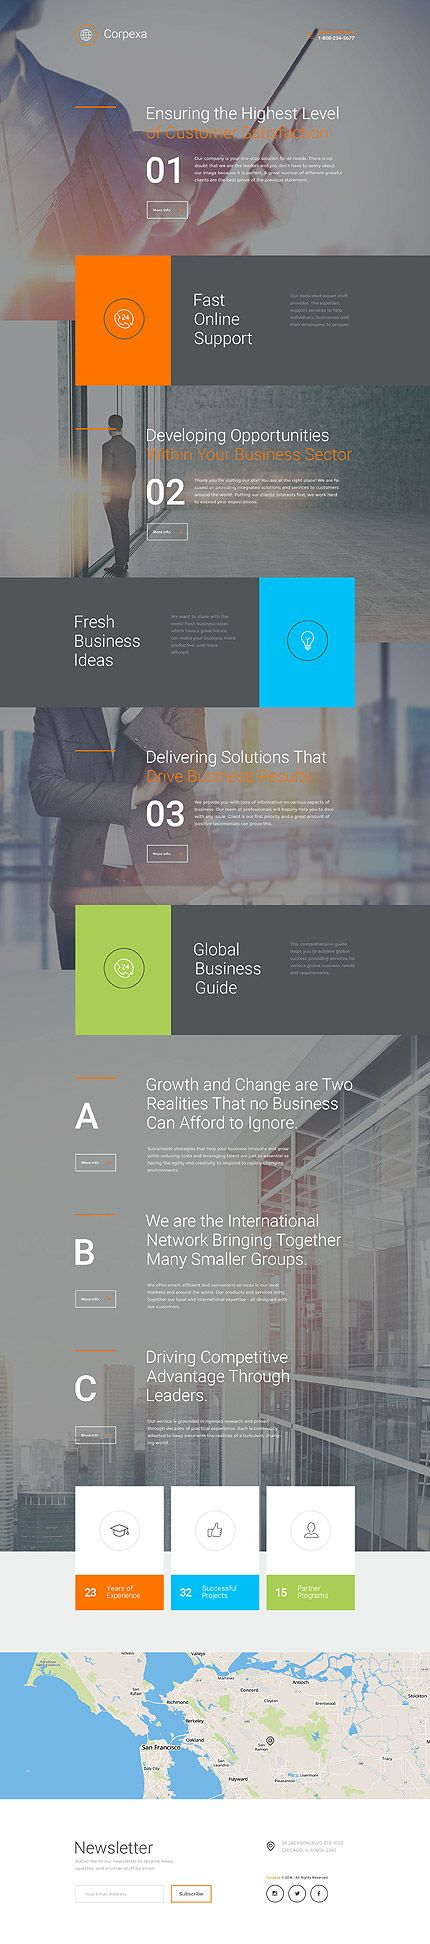 Template 58222 - Corpexa Business  Responsive Landing Page Template